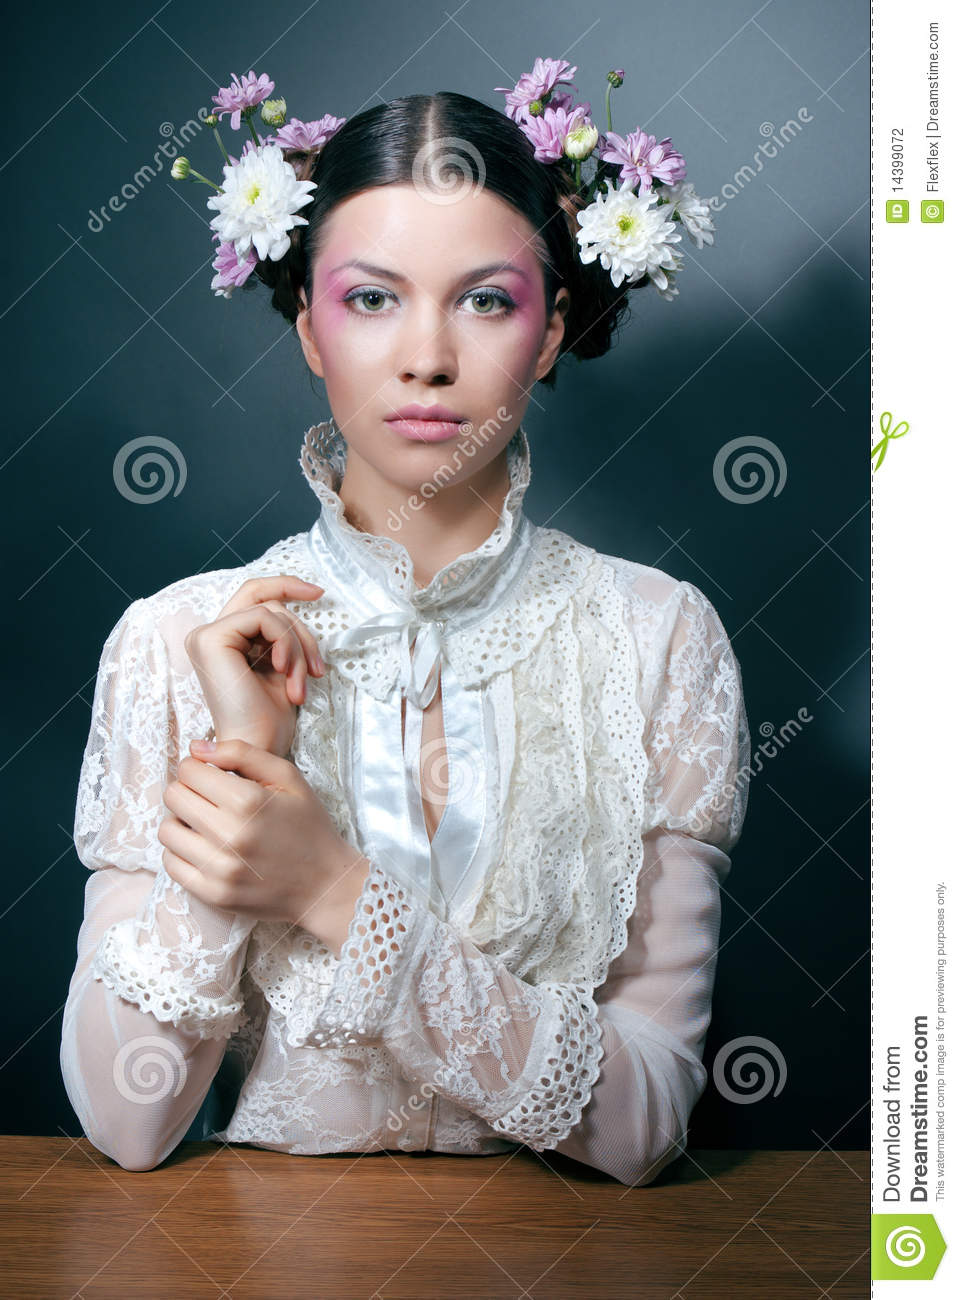 Young Woman Portrait With Fresh Flowers In Hair Stock